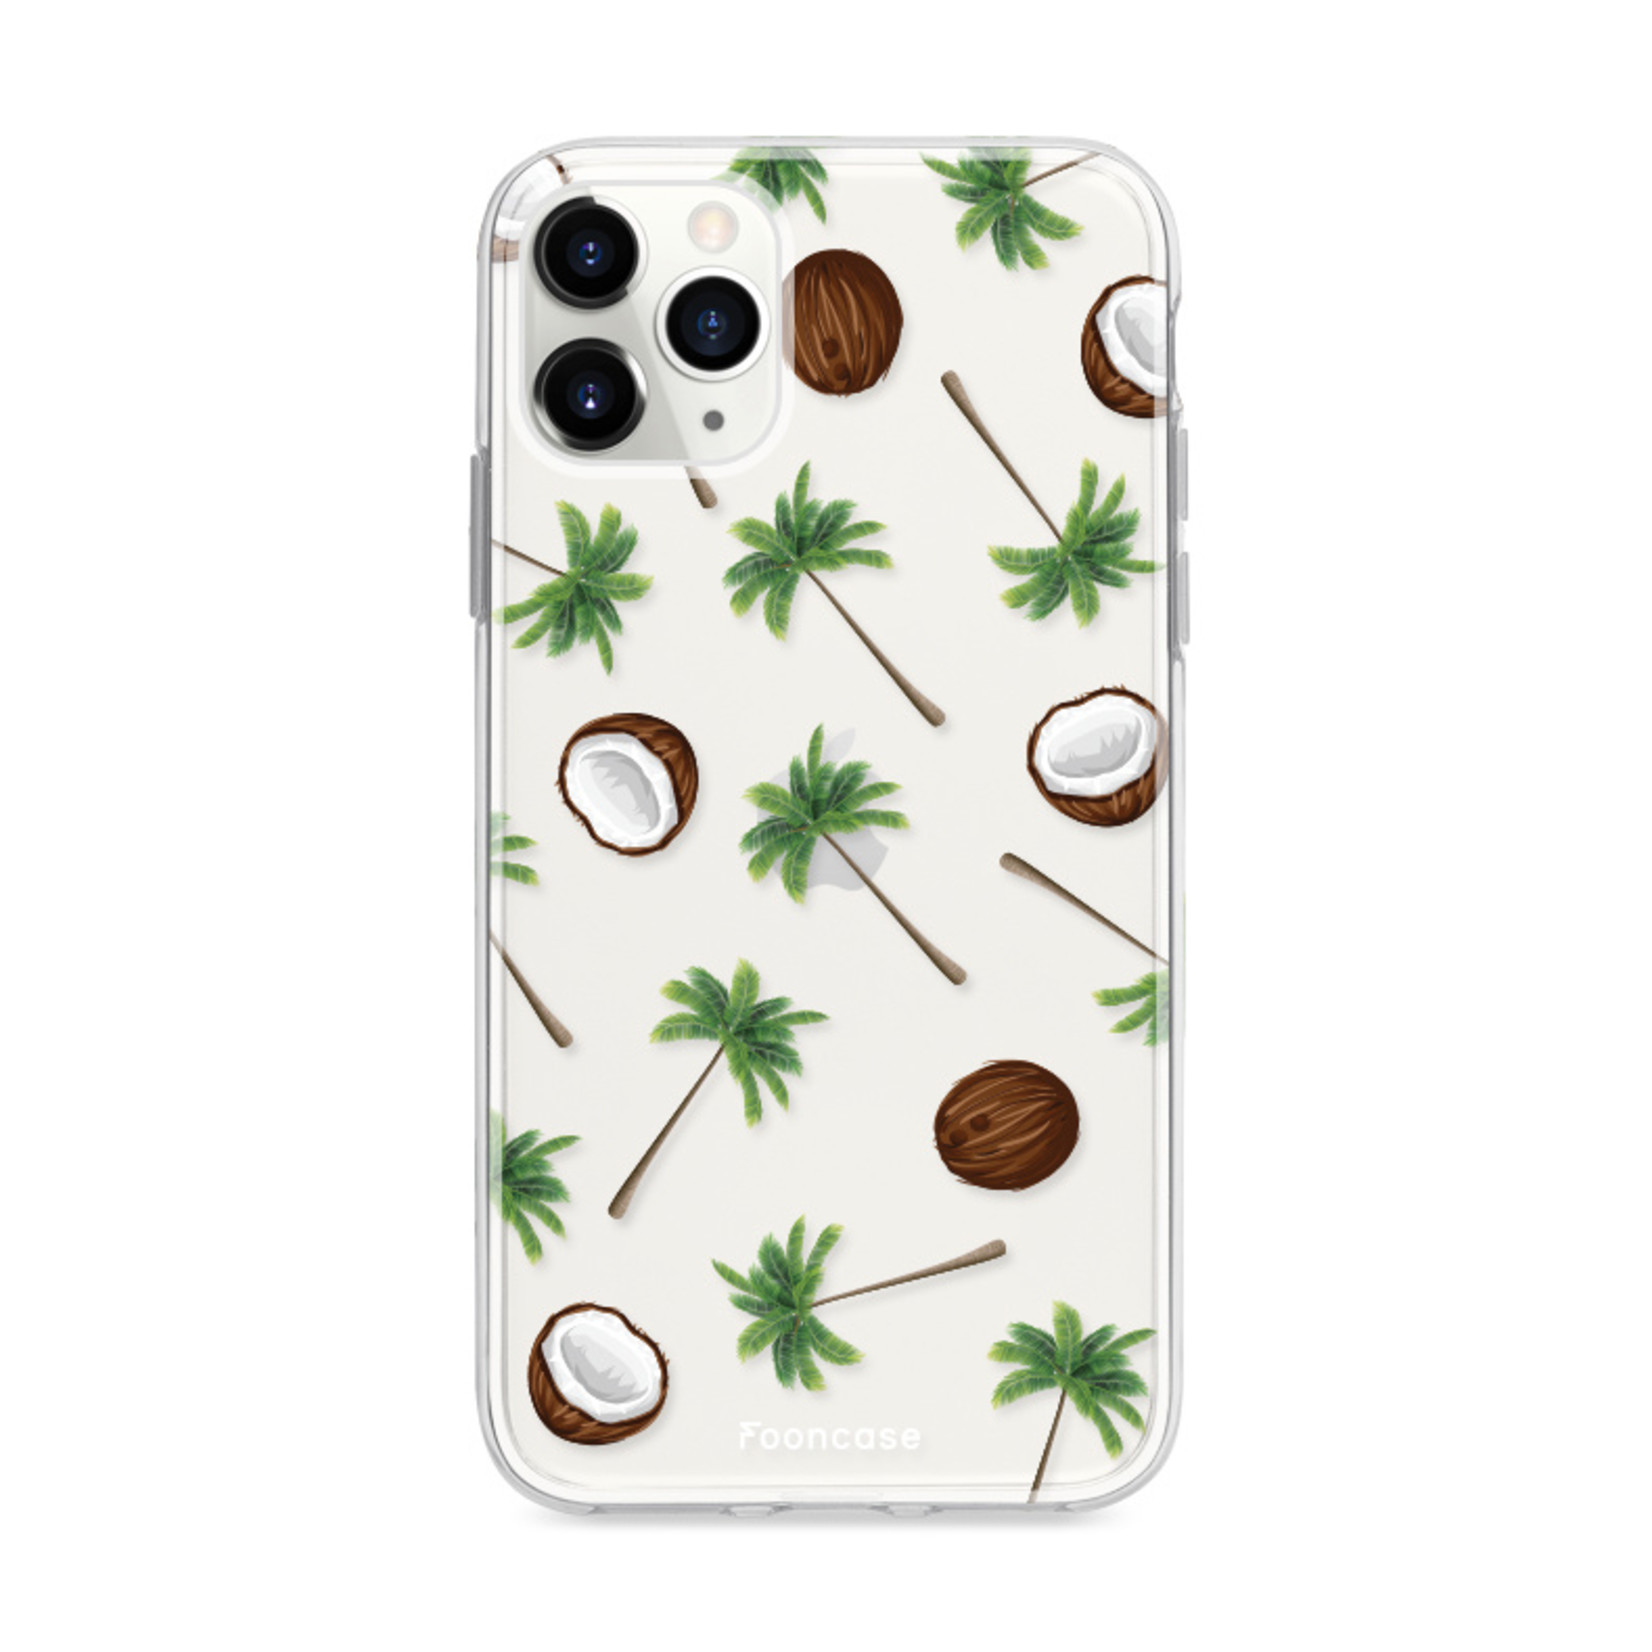 FOONCASE iPhone 11 Pro Max hoesje TPU Soft Case - Back Cover - Coco Paradise / Kokosnoot / Palmboom